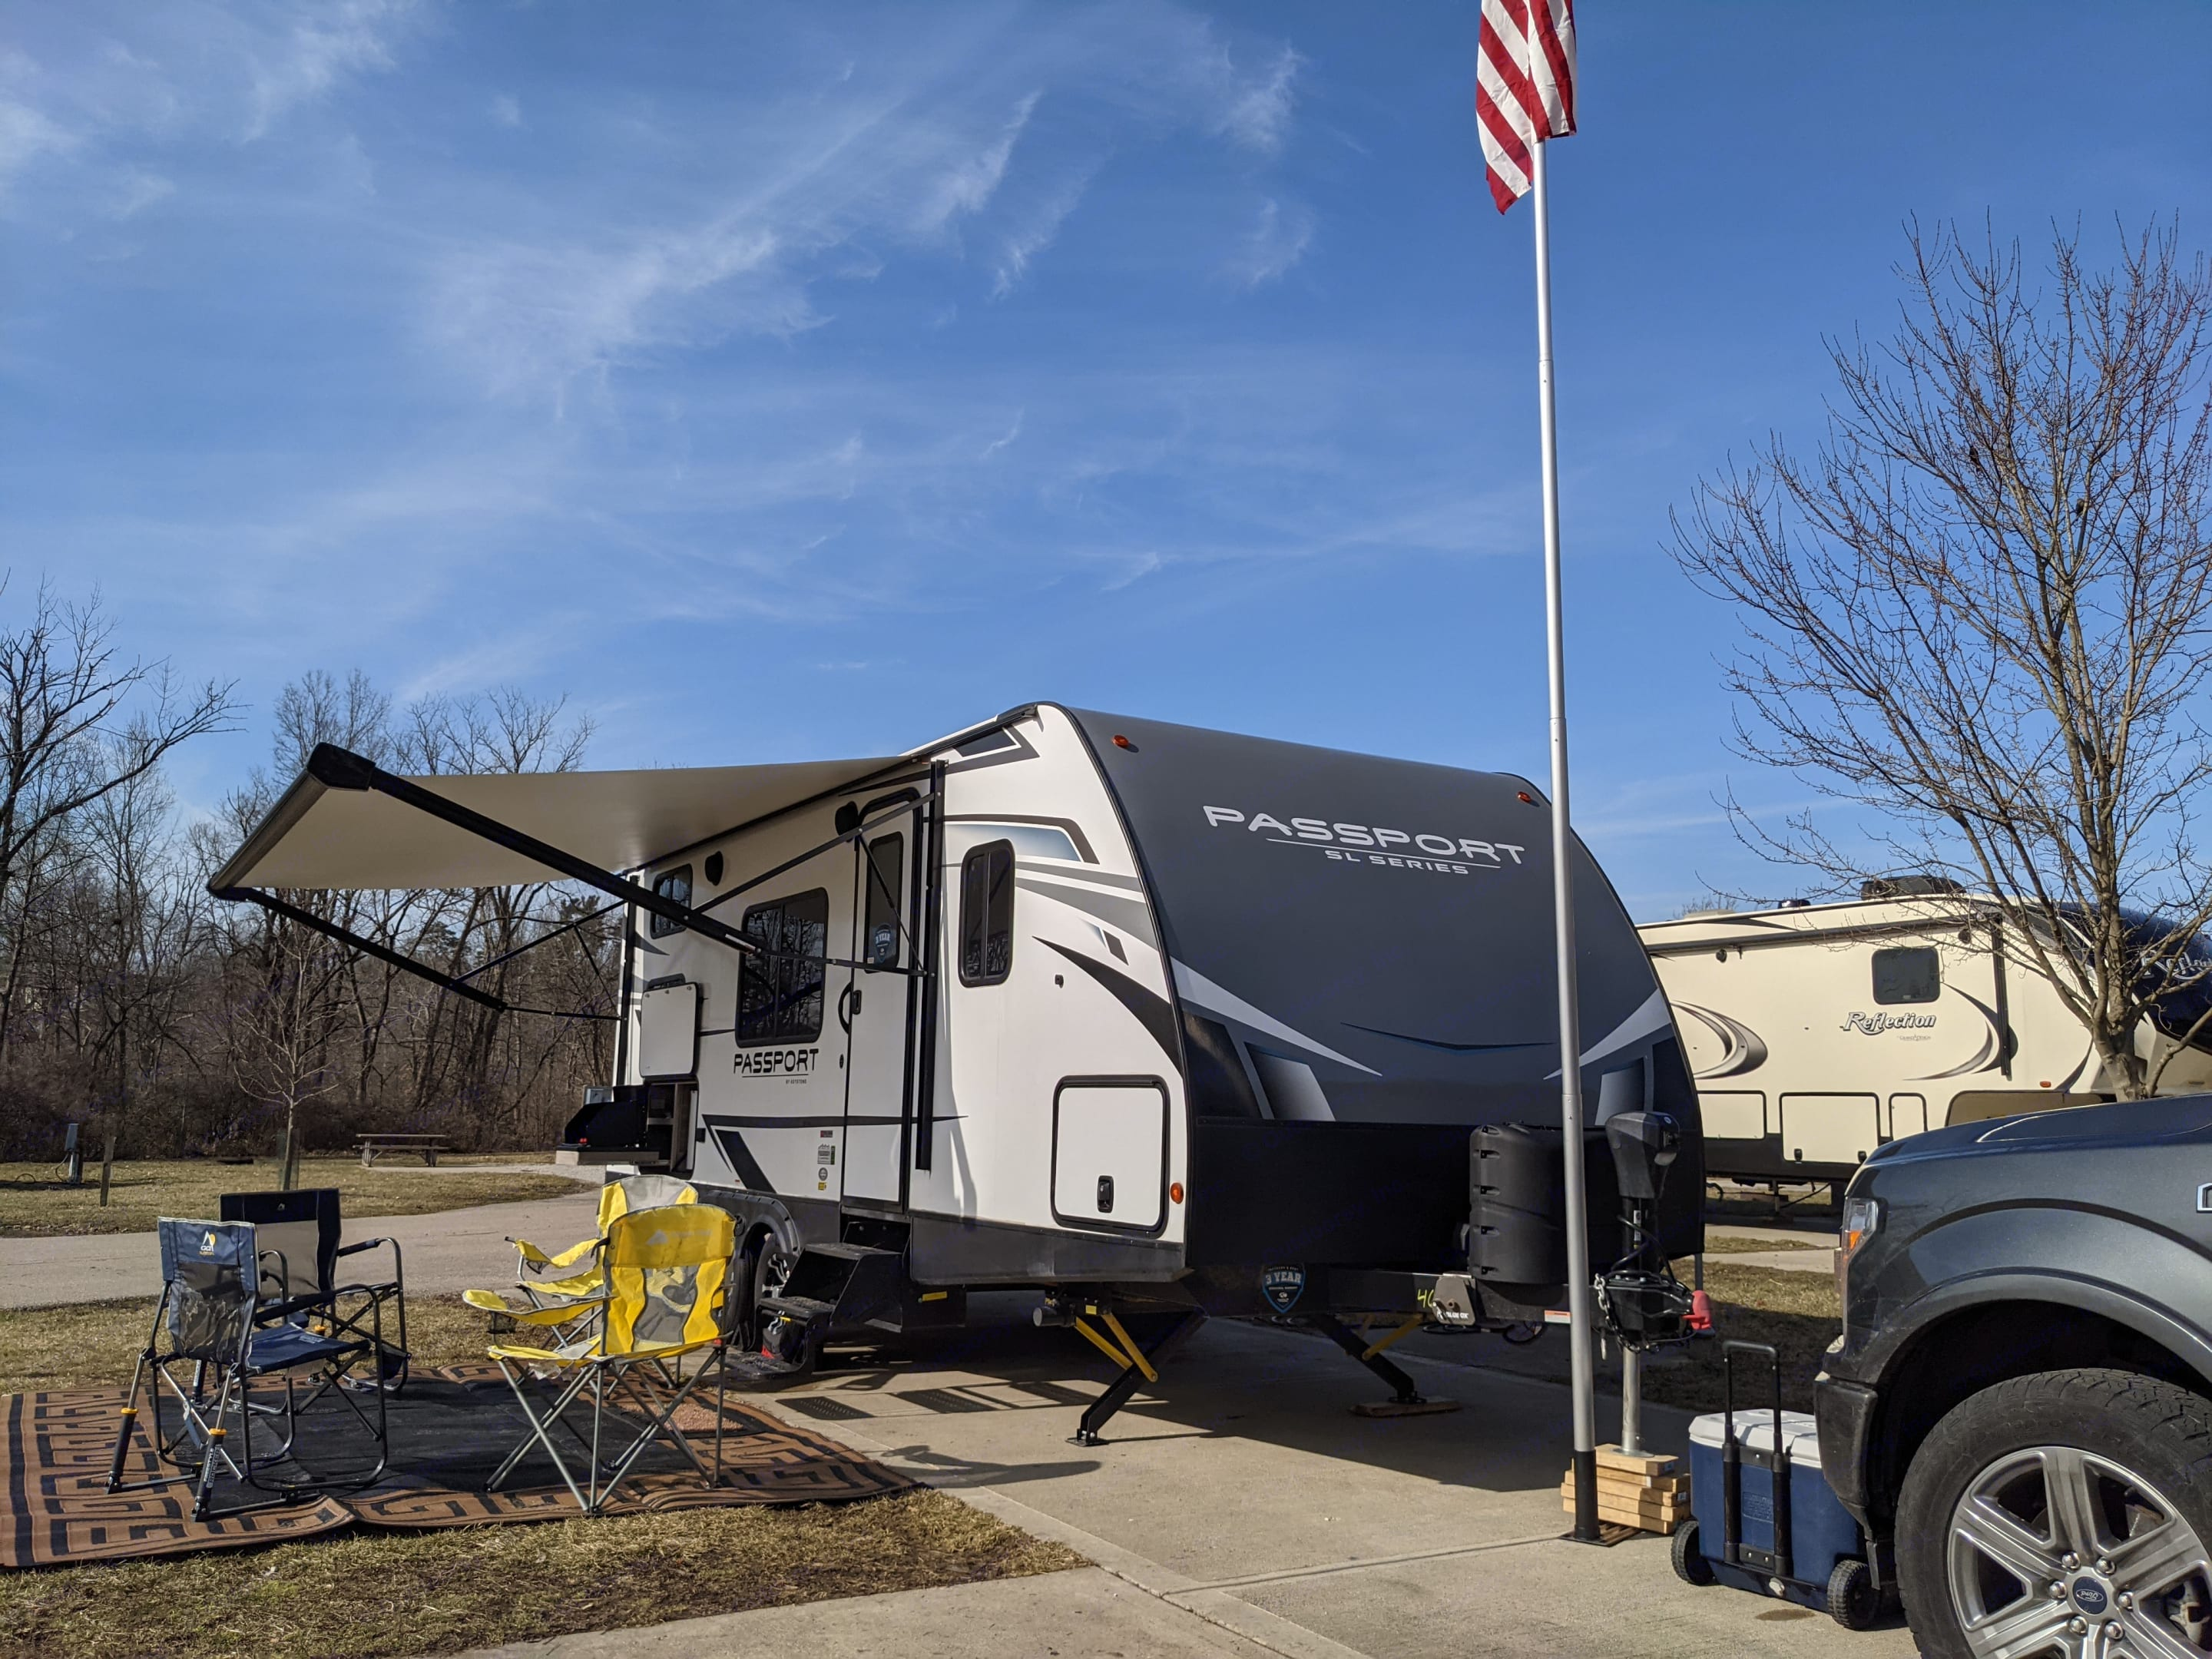 This was our site at Winton Woods, a Hamilton County park. Keystone Passport 2021